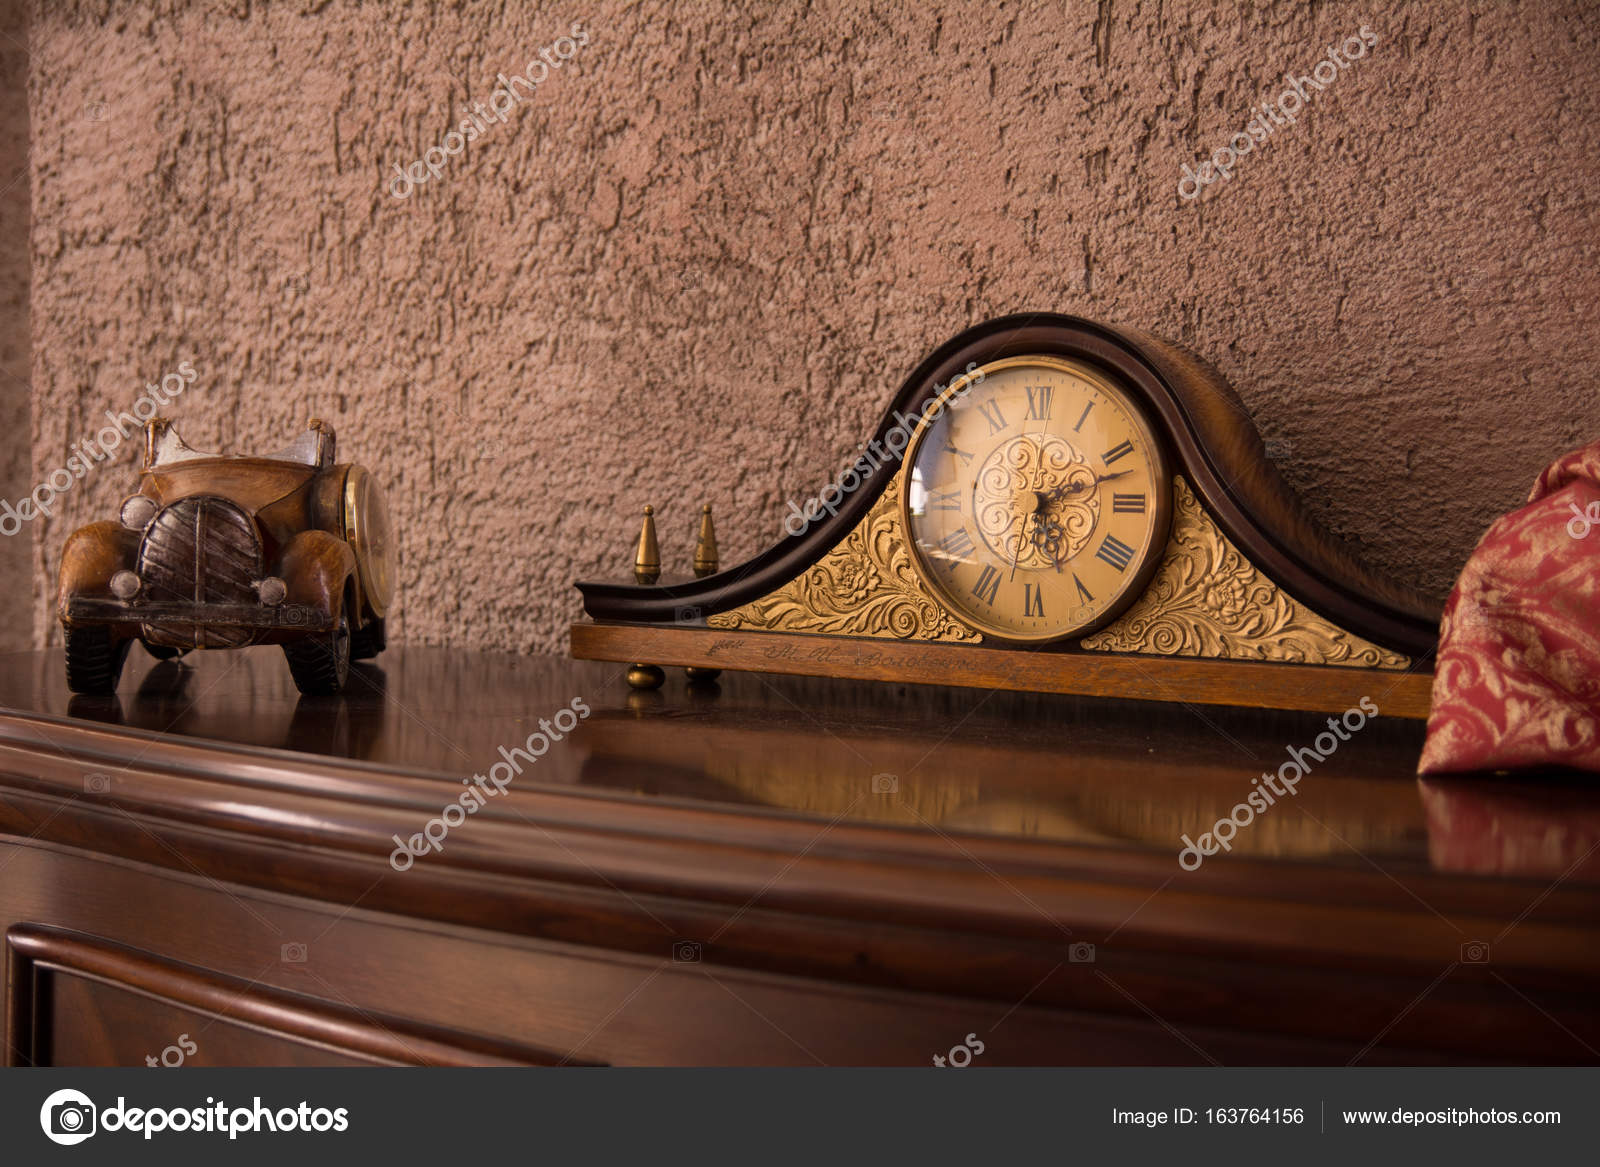 Antique Desk Clock And Auto On The Chest Of Drawers Near Wall In Brown Tones Photo By Kanzefar